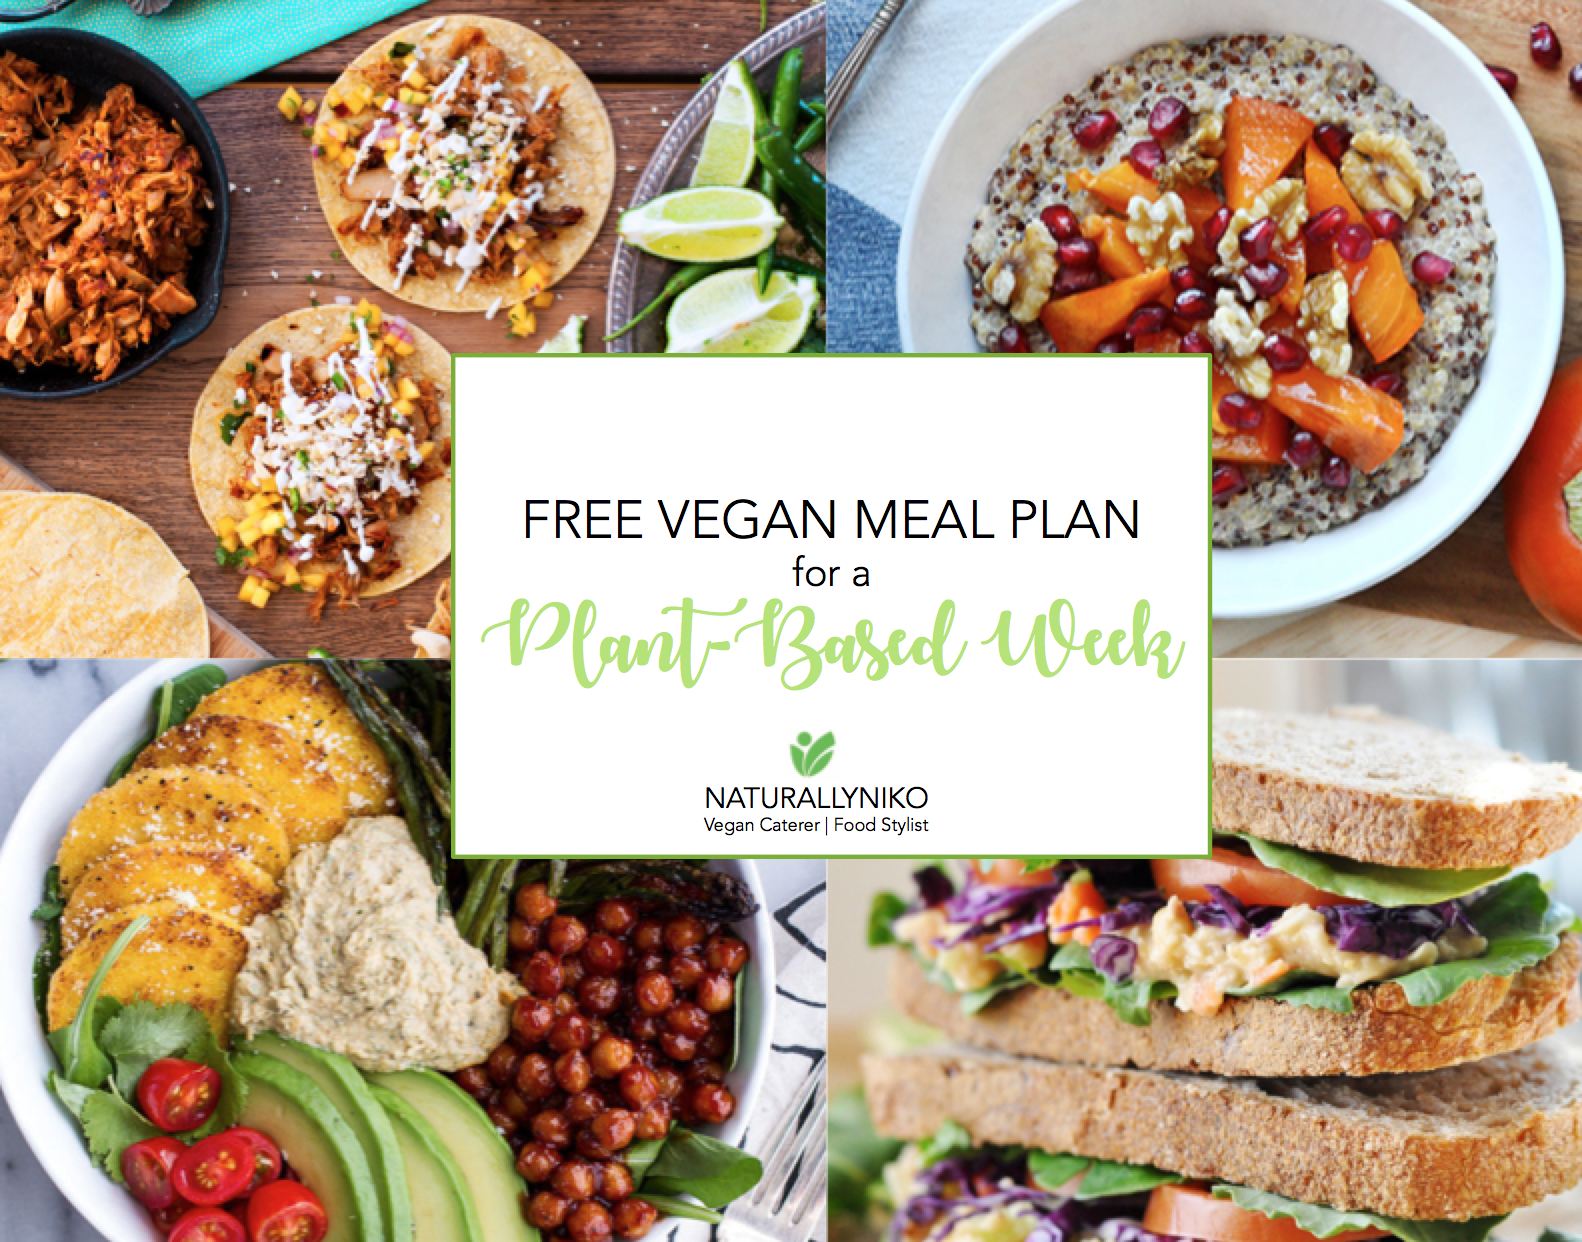 Naturally Niko Vegan Meal Plan Page 1.png